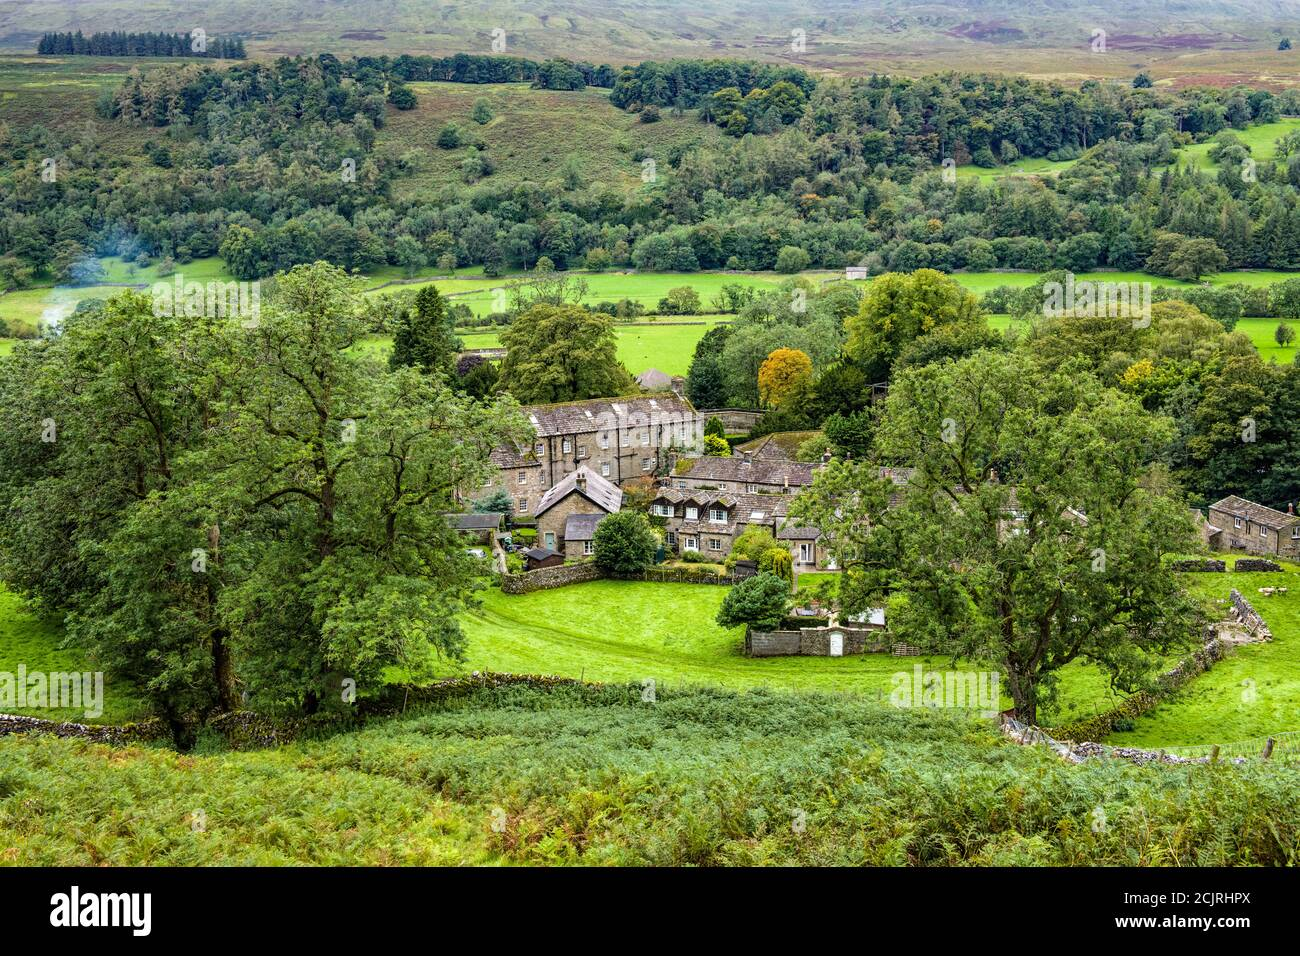 Looking up Upper Wharfedale over the Dales village of Buckden during a lovely walk along the fell bottom on a September morning - beautiful landscape. Stock Photo